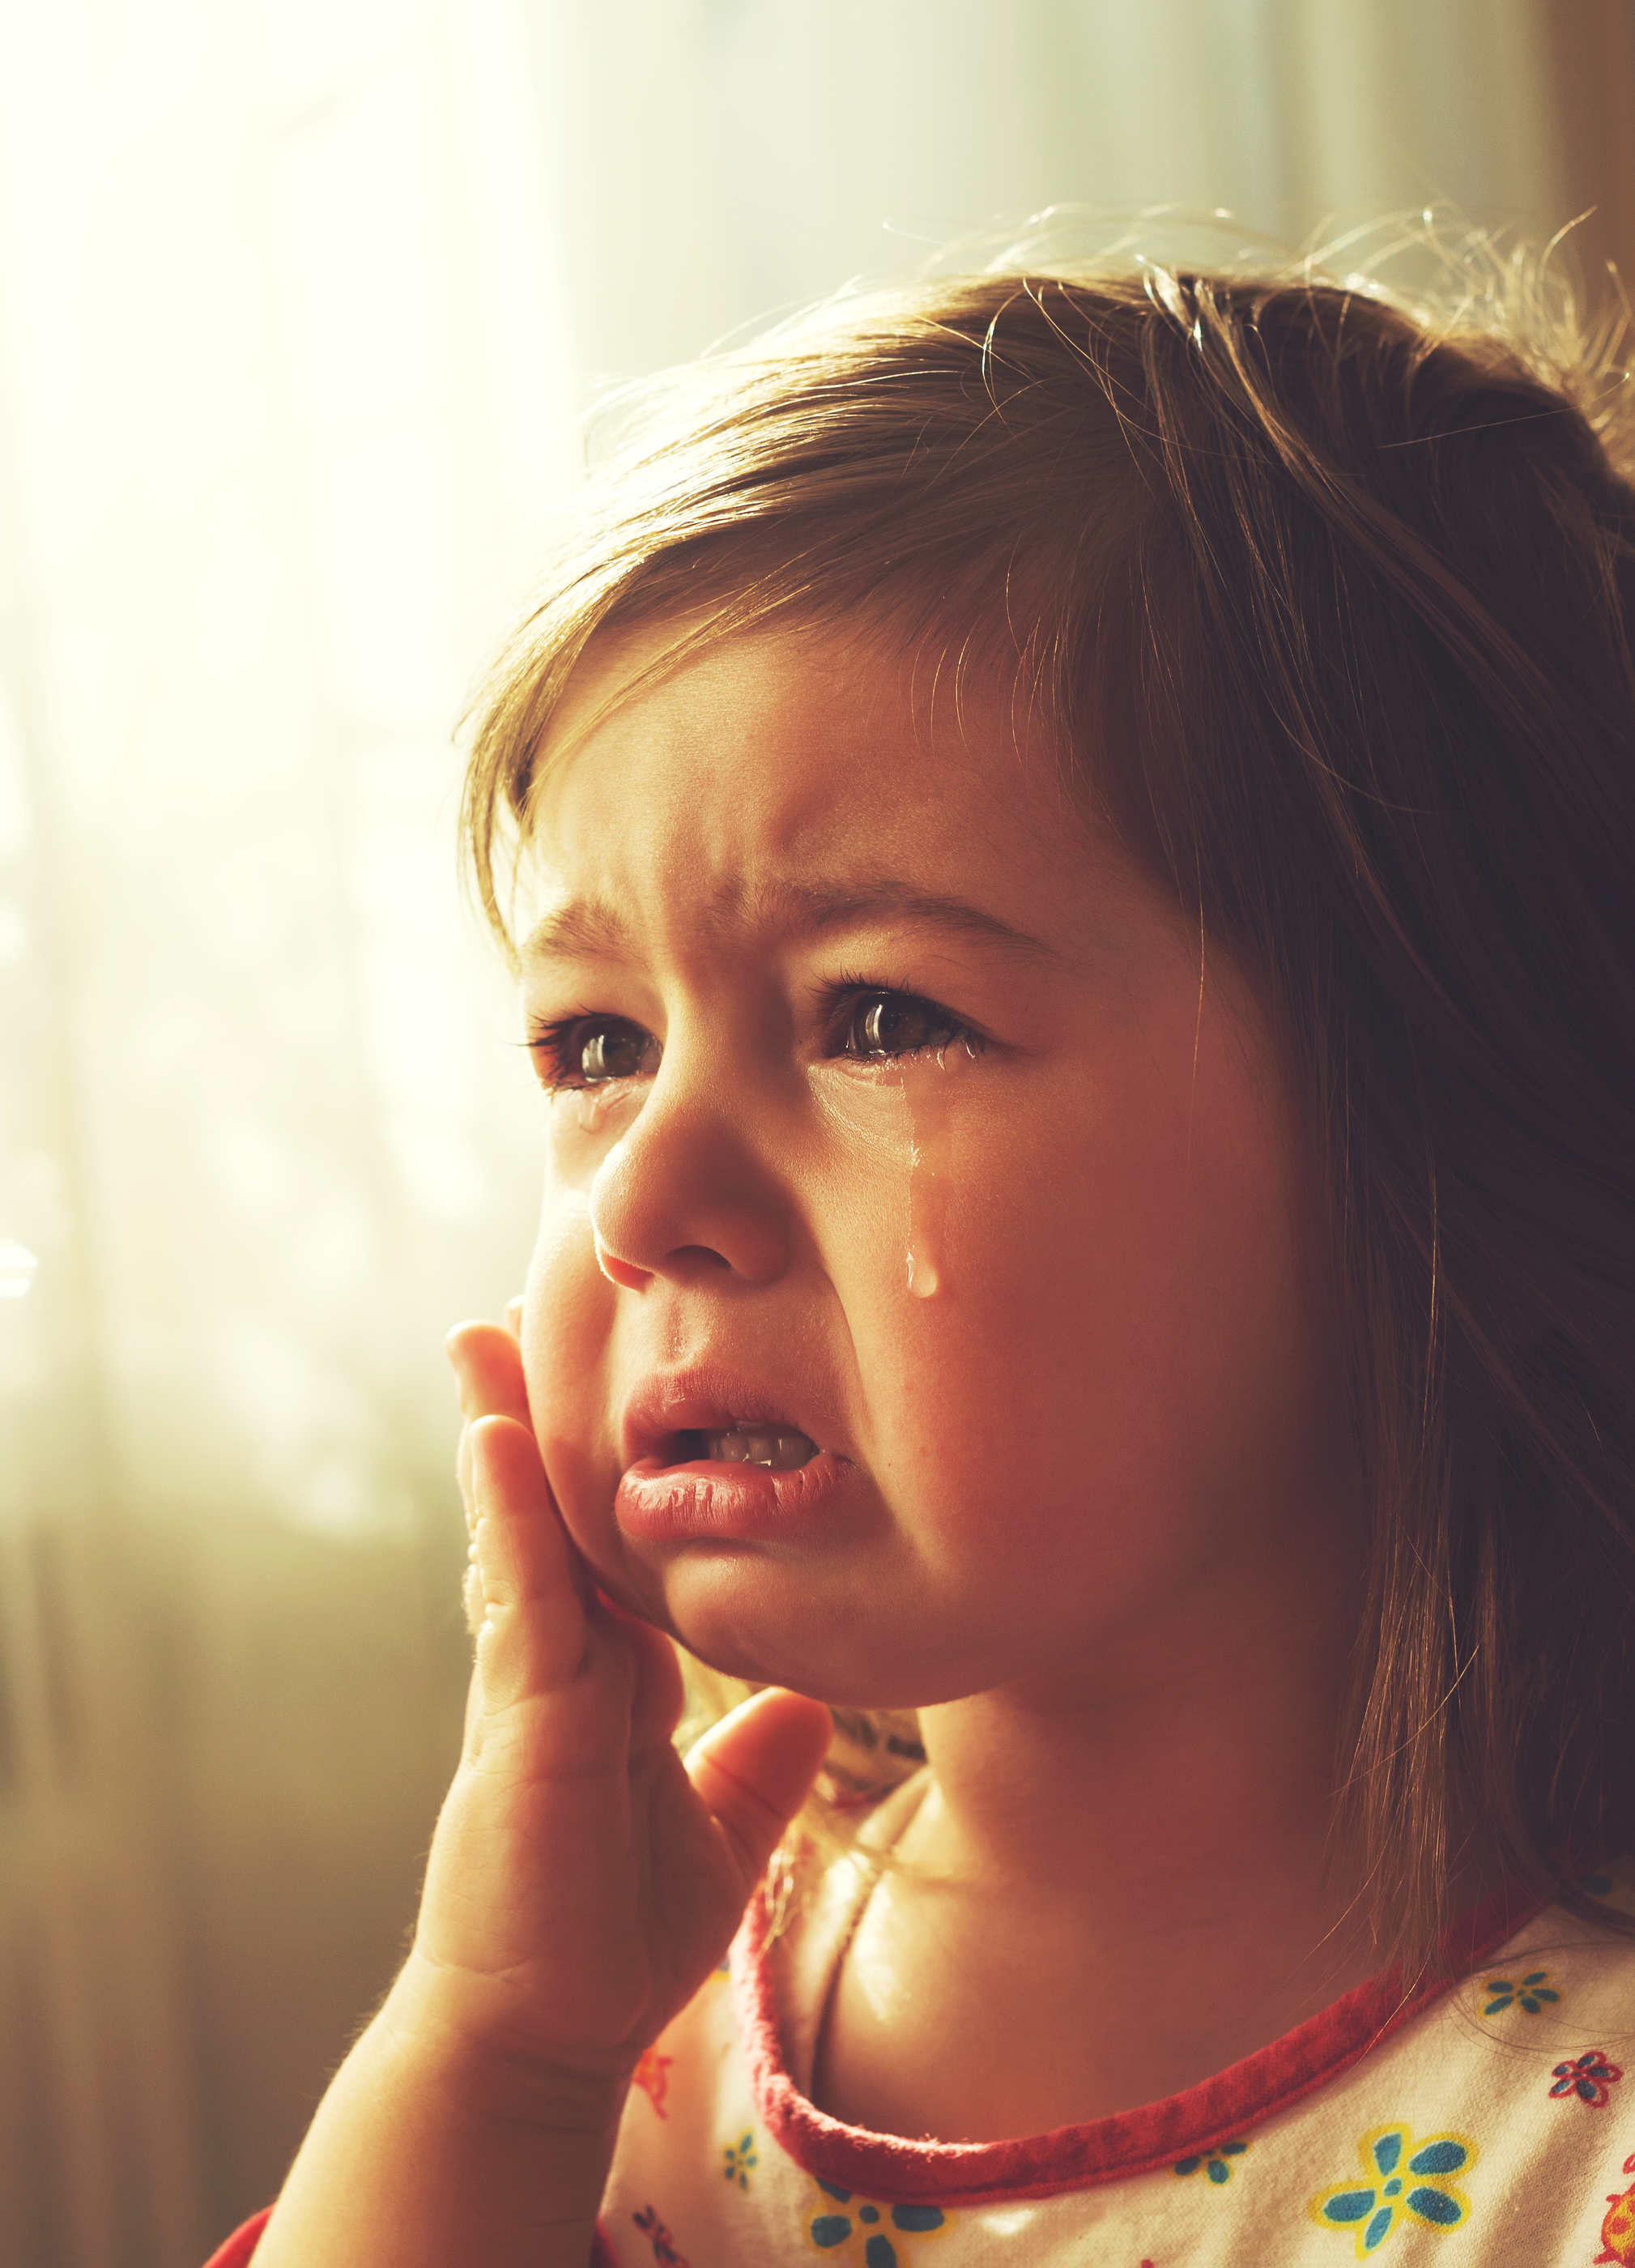 Dear Mommy and Daddy, It's Me Your Anxious Toddler. Please ...